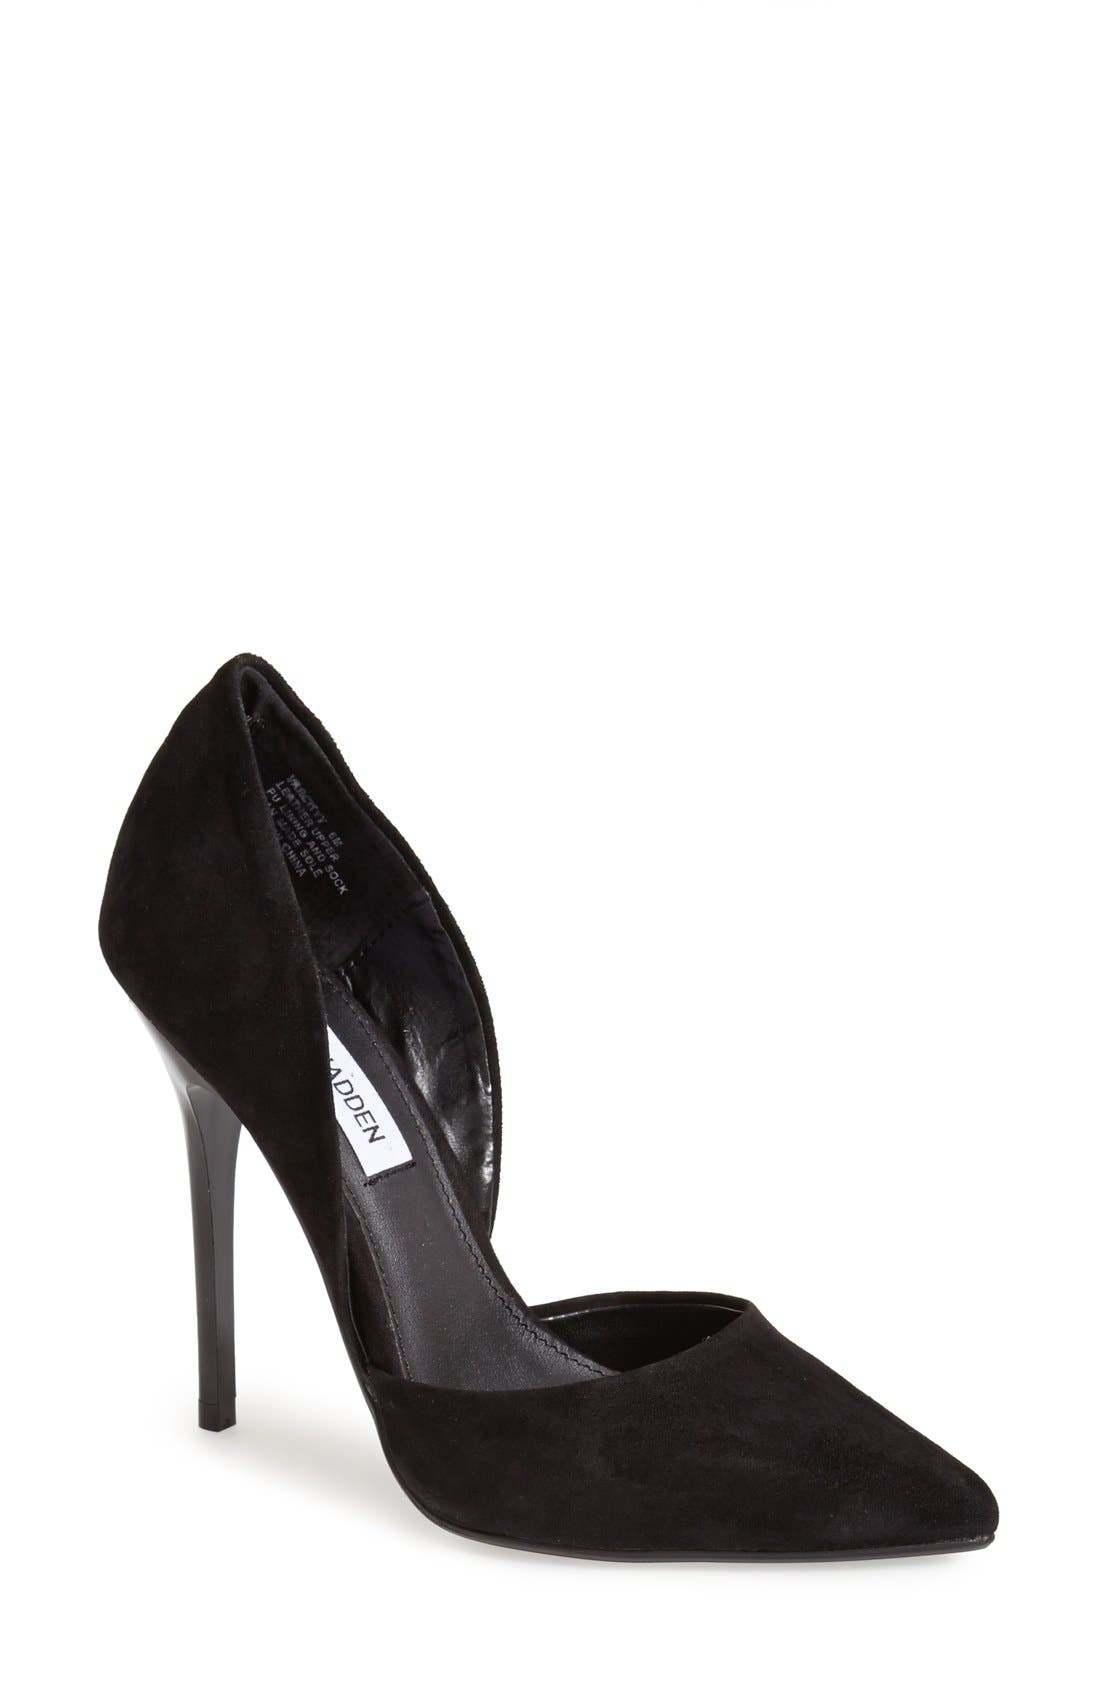 'Varcityy' Pointy Toe Pump,                         Main,                         color, 006